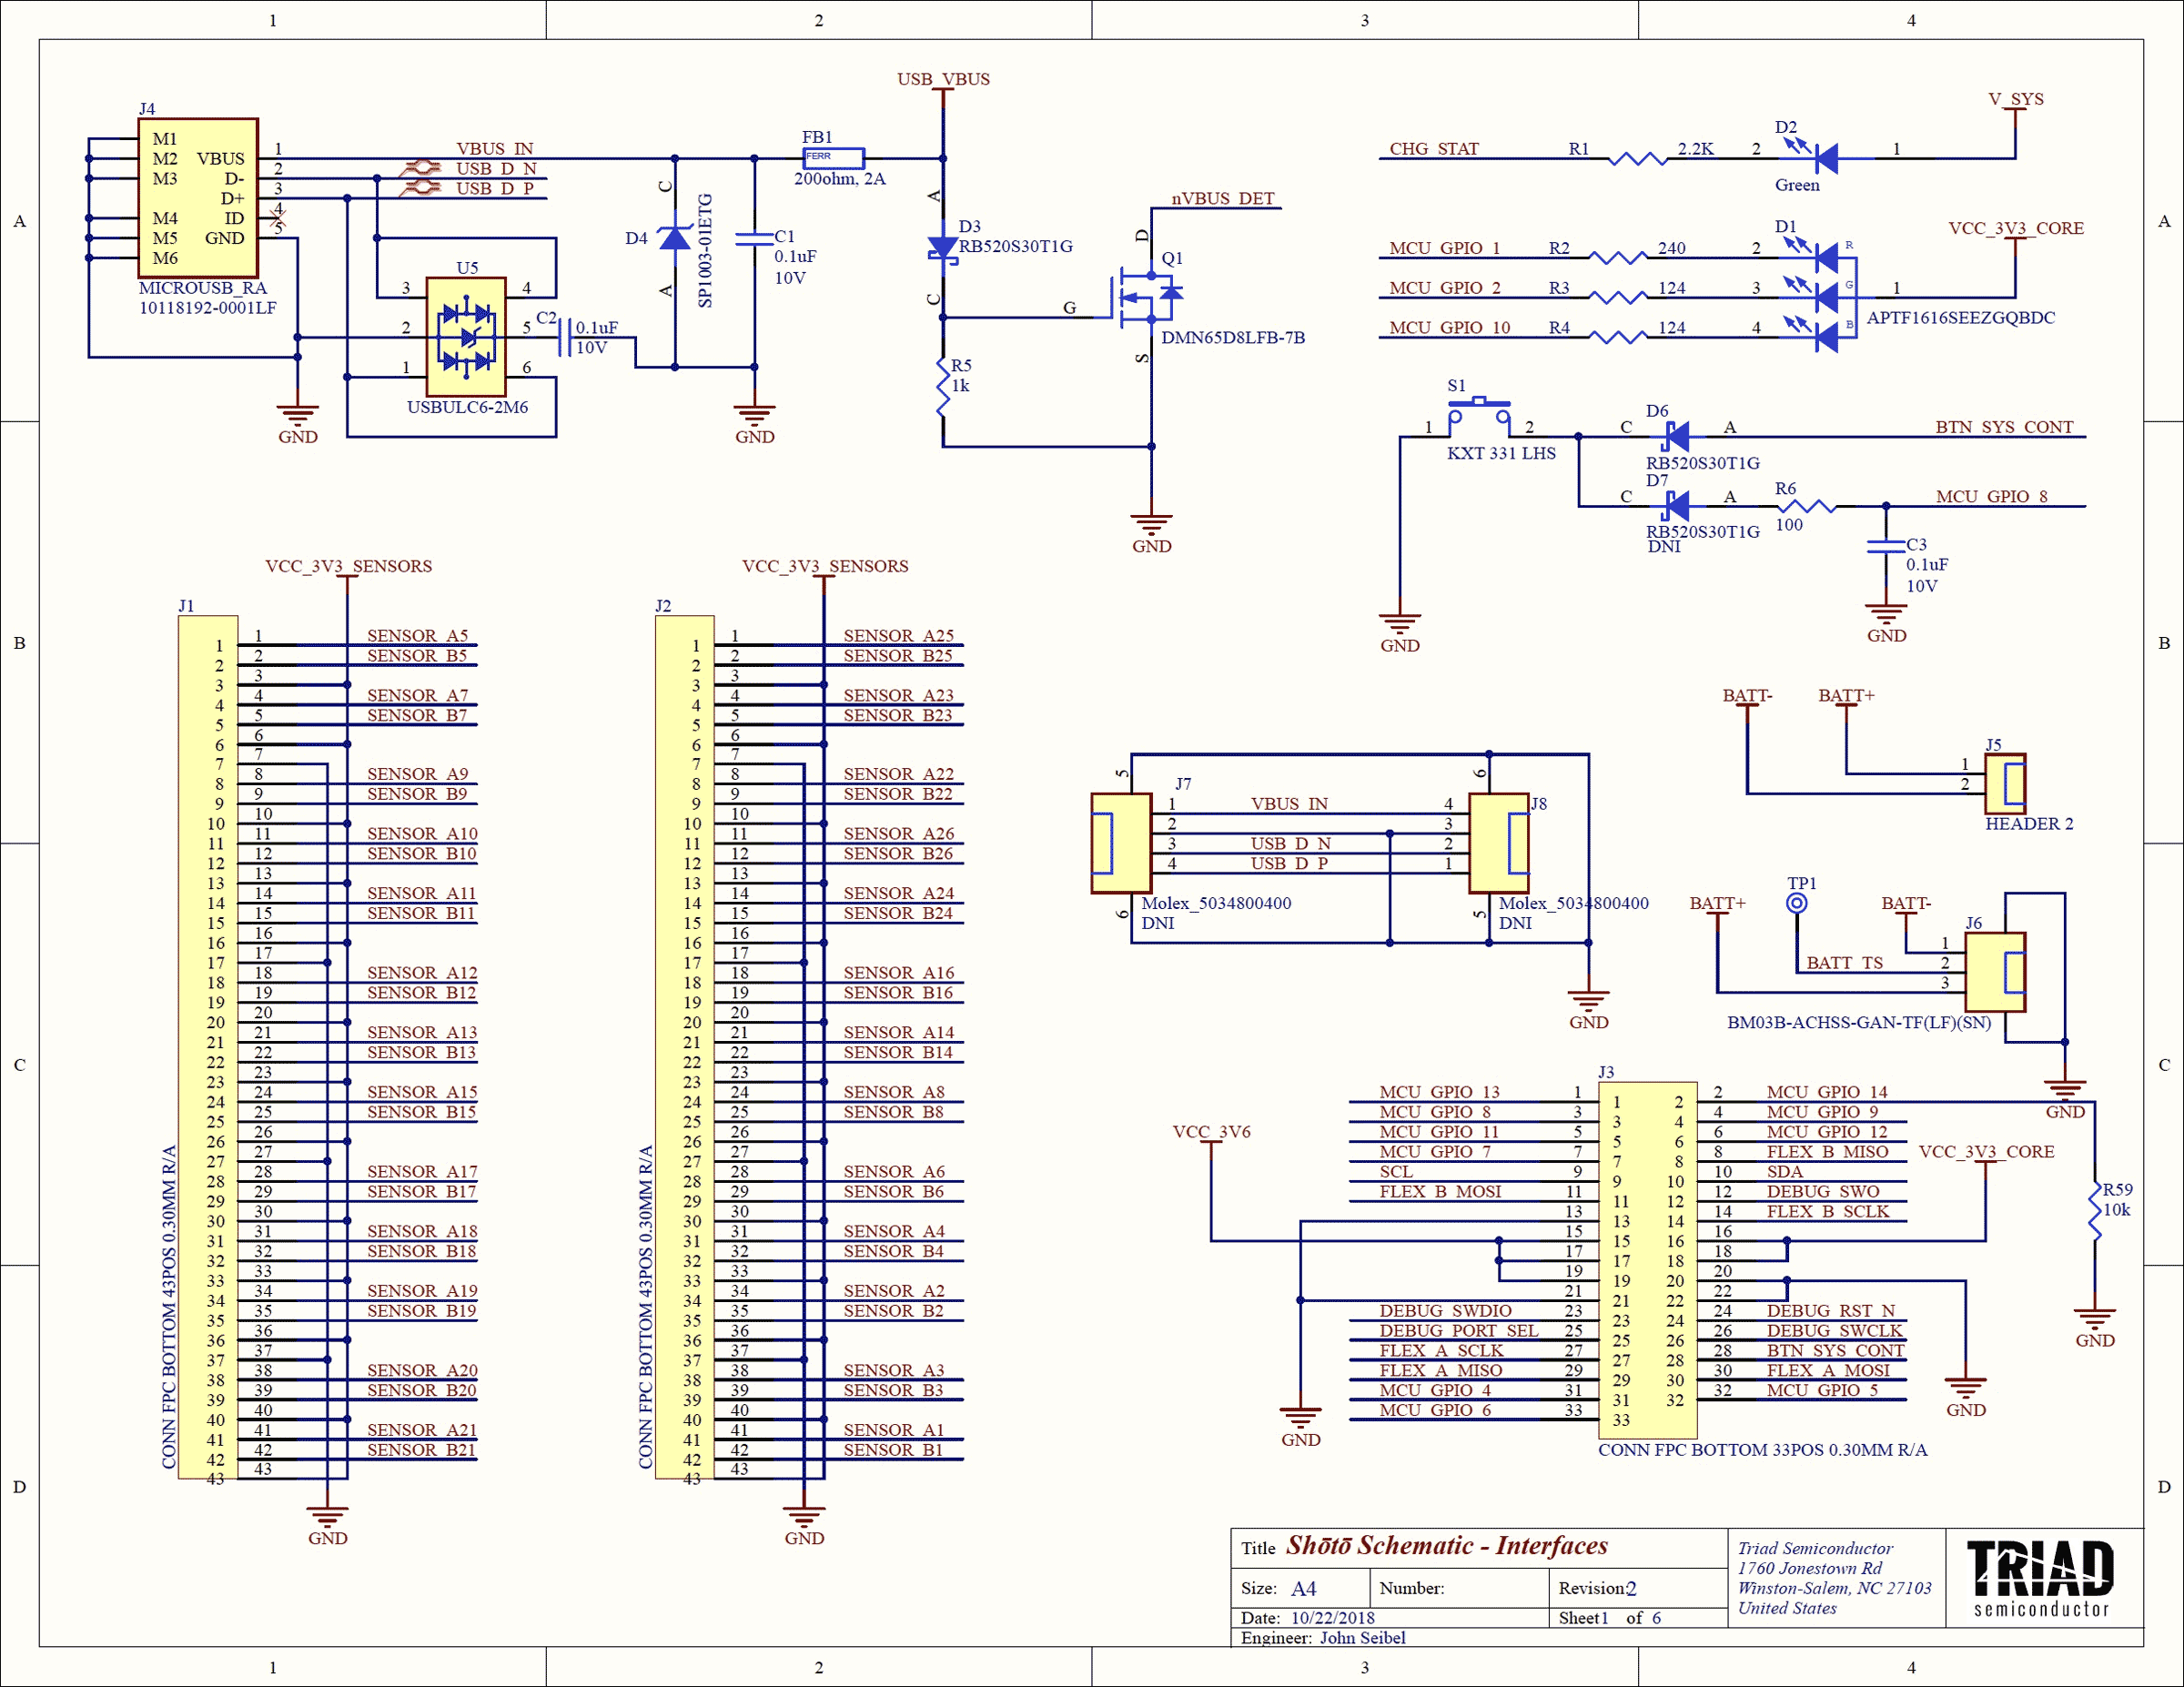 Sheet 1 - Connectors & Indicators